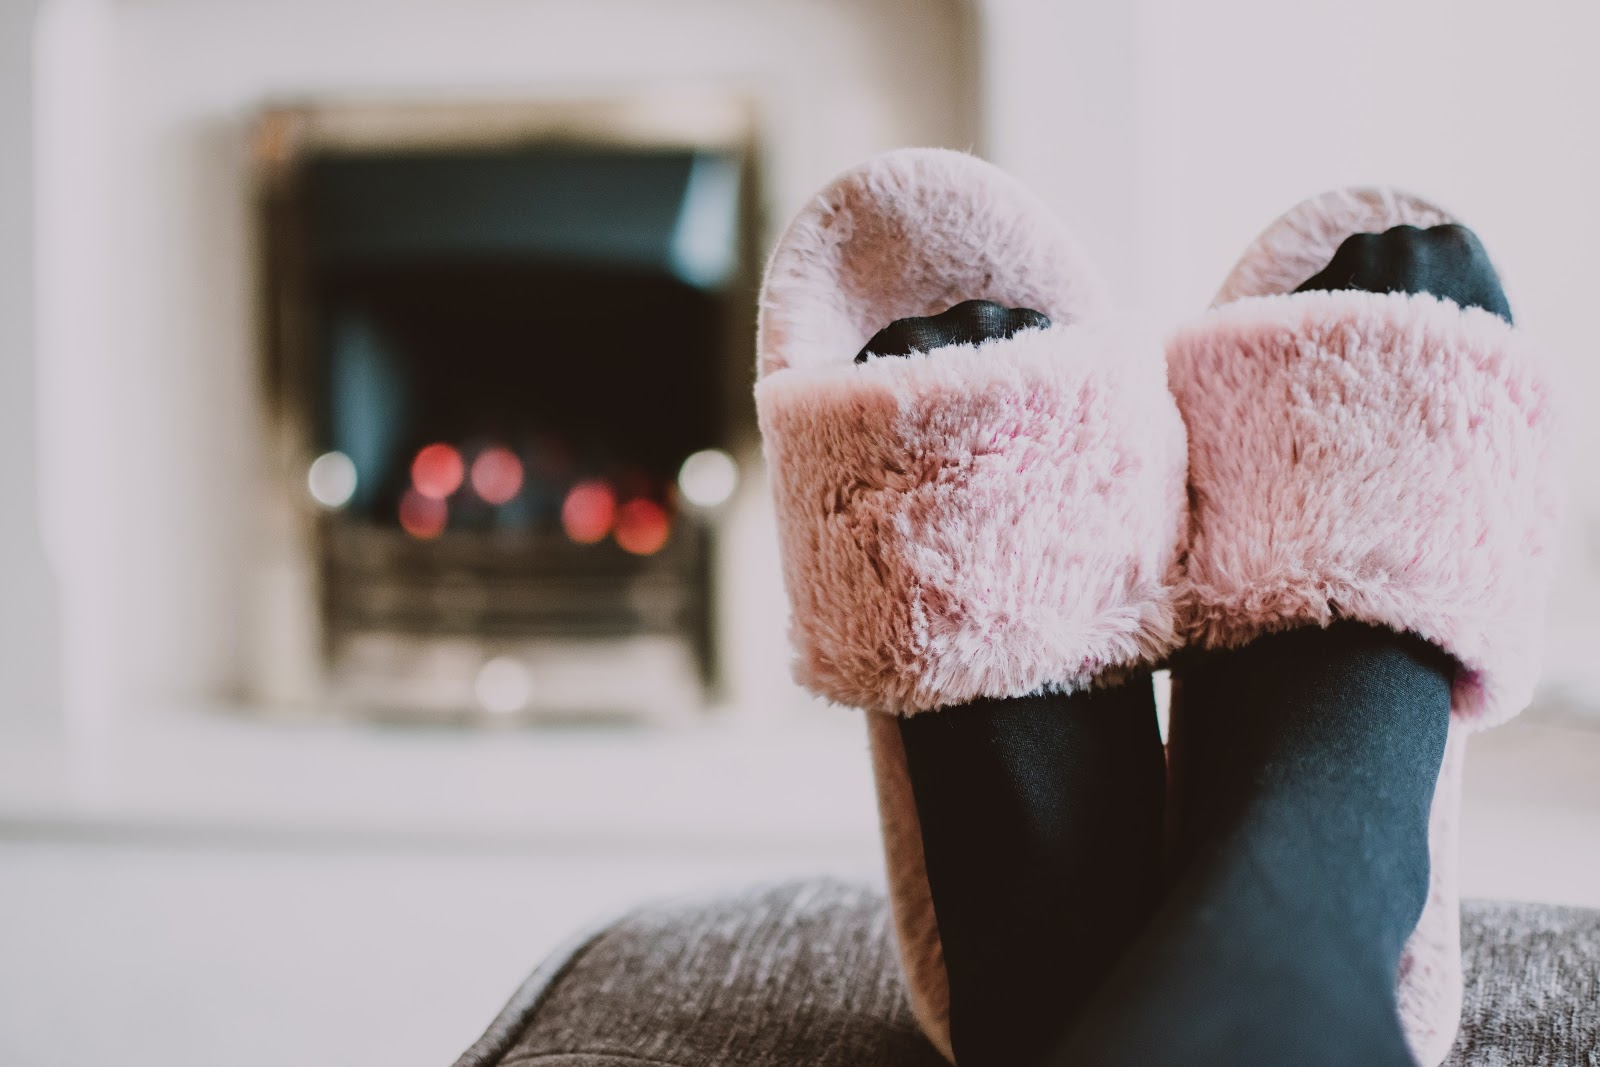 An Image of feet propped up on a comfy sofa while wearing soft slippers